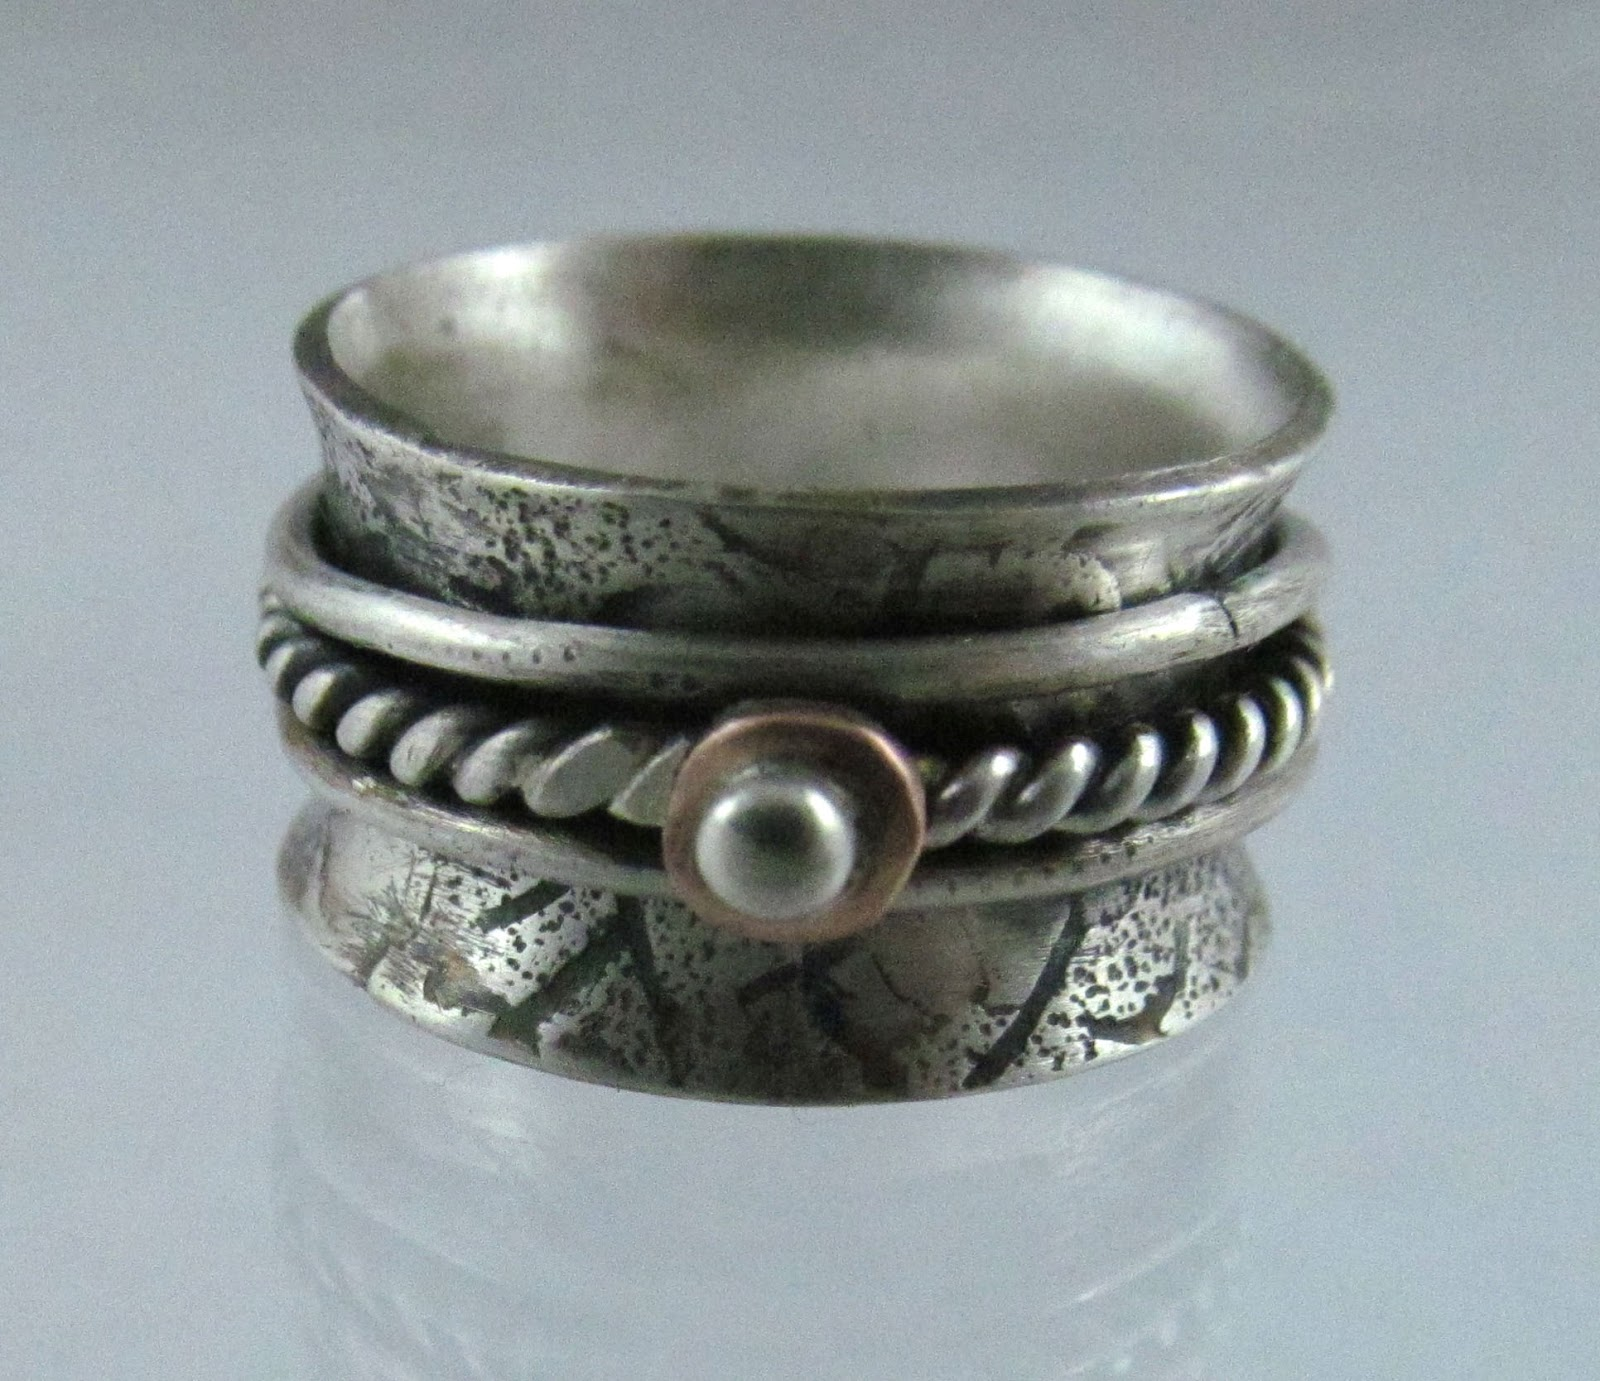 lori s unique jewelry spinner rings series also known as